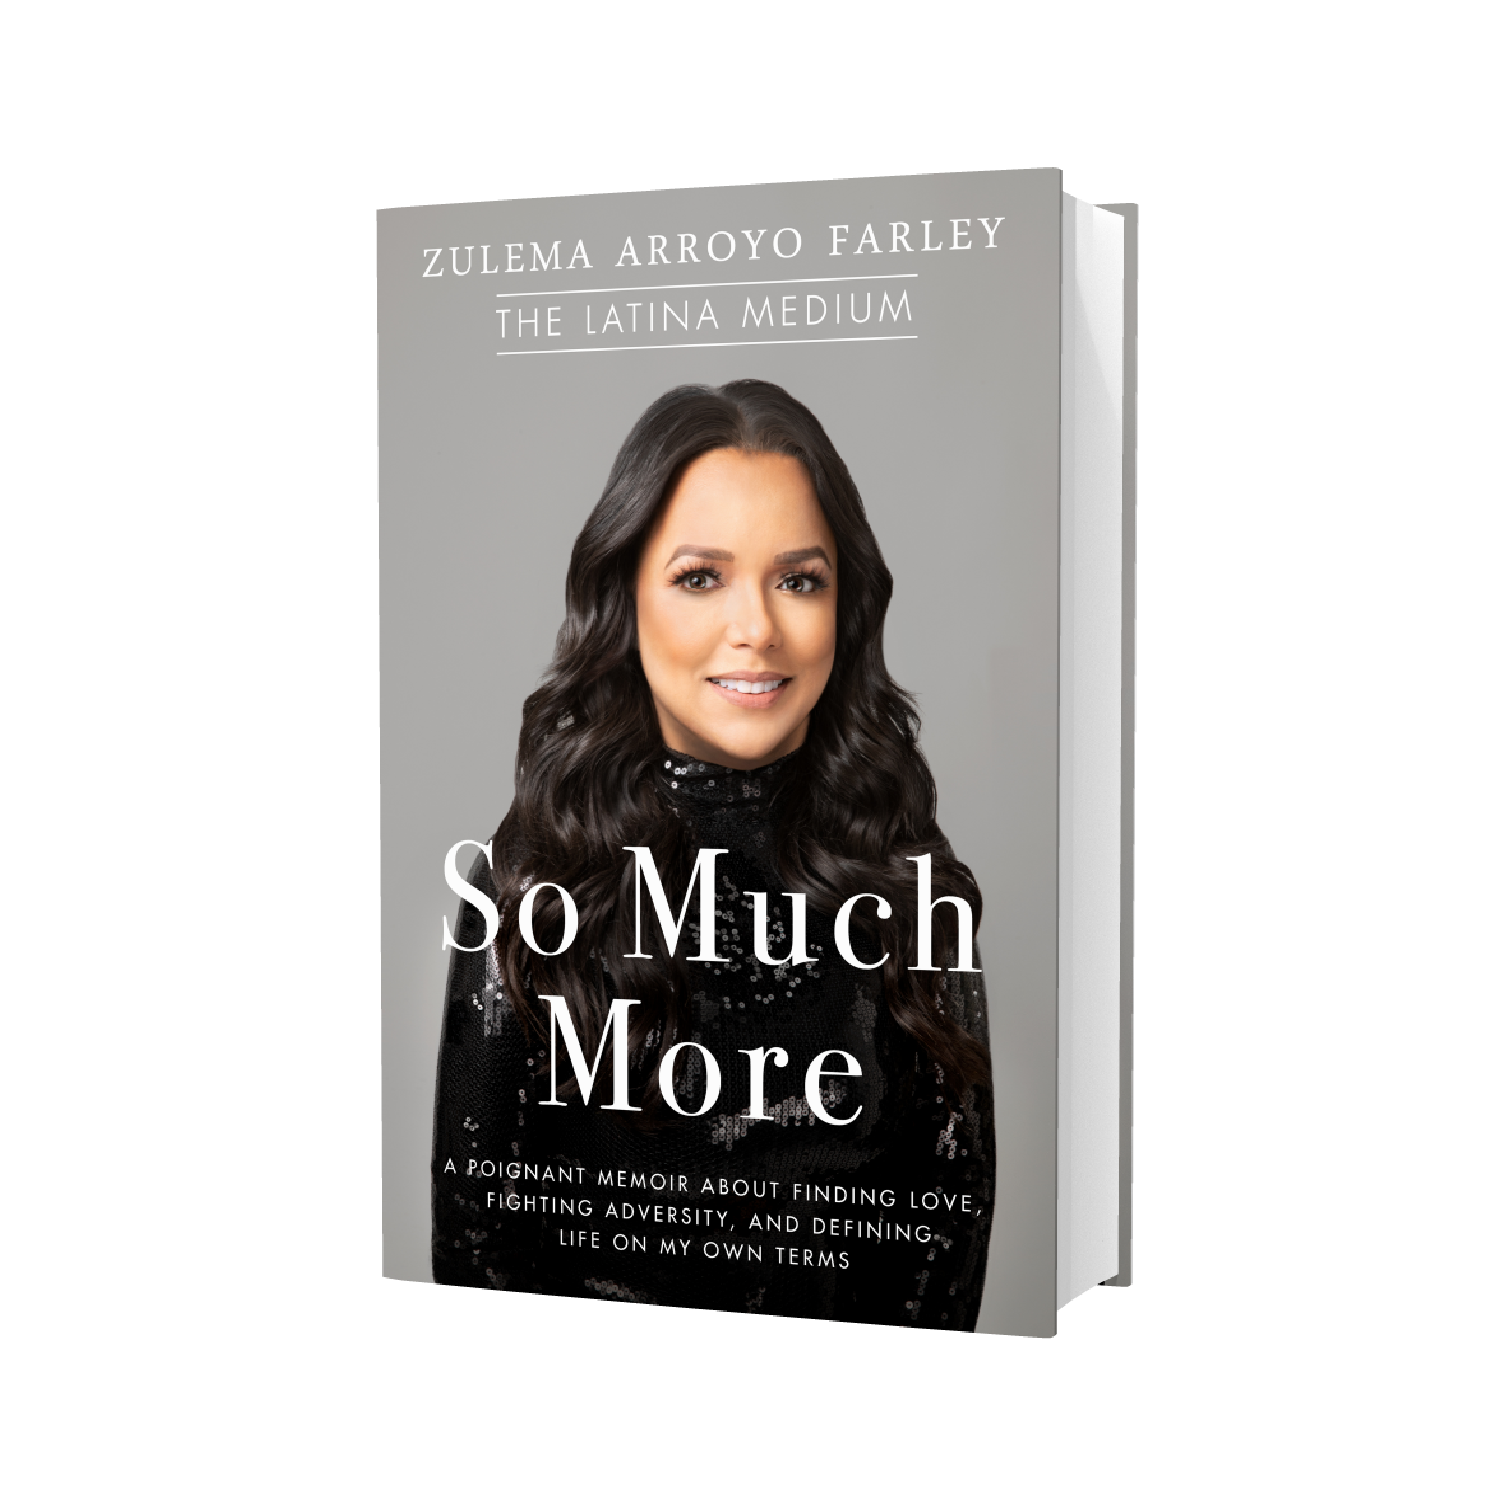 On April 2017, I signed an international book deal - with globally renowned publishing company Atria Books, a division of Simon & Schuster.I am thrilled to share with the world my inspiring story of soaring highs and profound lows, and the sarcoma diagnosis that changed my life forever.My memoir, So Much More in English and in Spanish Muchísimo más is available now in bookstores.